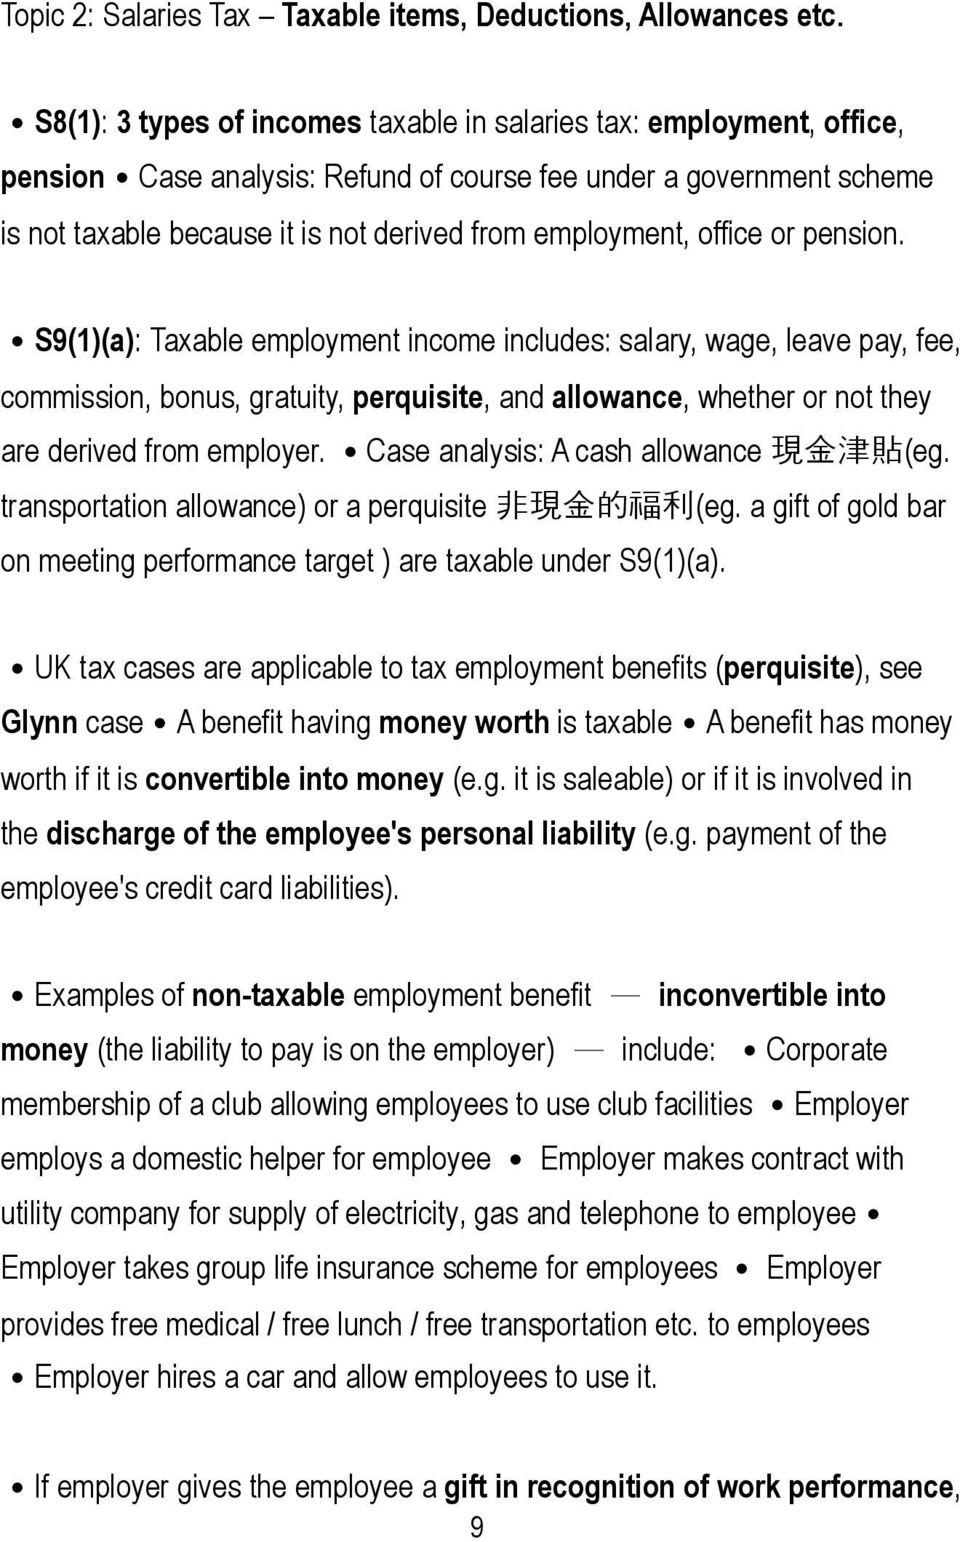 office or pension. S9(1)(a): Taxable employment income includes: salary, wage, leave pay, fee, commission, bonus, gratuity, perquisite, and allowance, whether or not they are derived from employer.